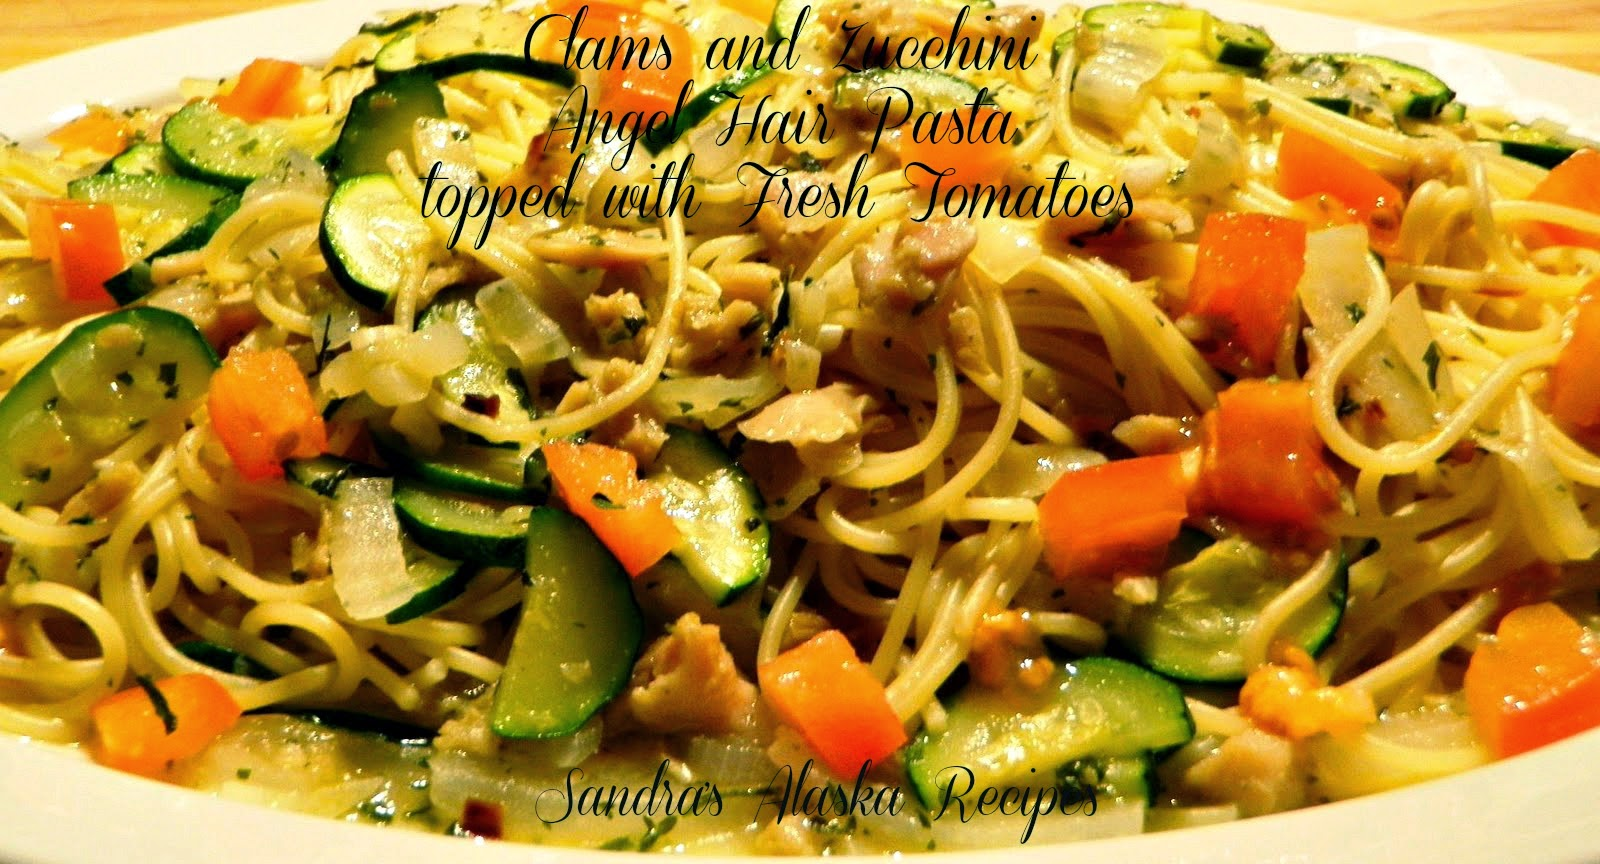 ... CLAMS and ZUCCHINI ANGEL HAIR PASTA topped with FRESH TOMATOES